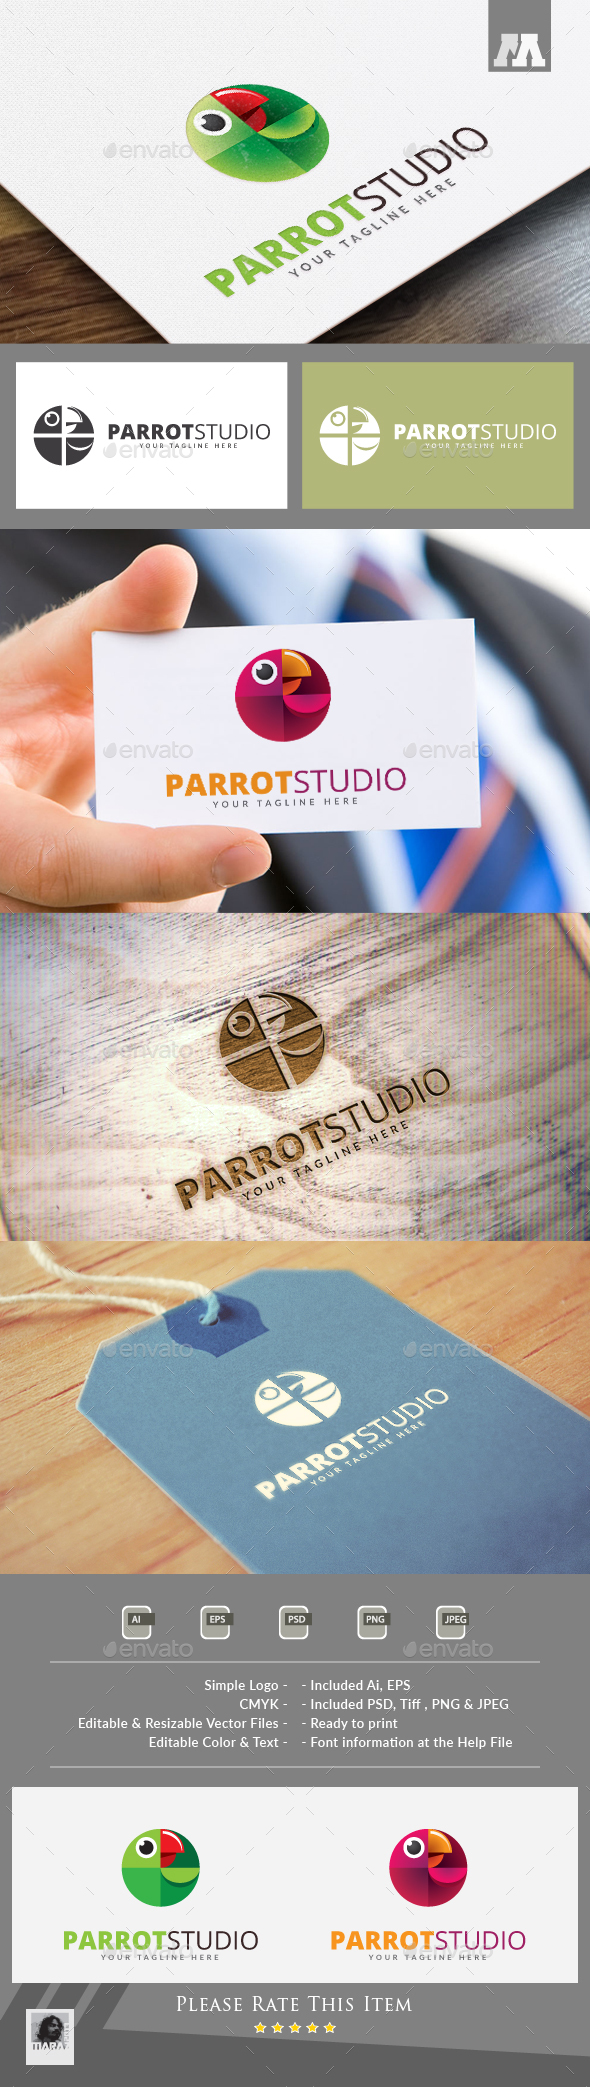 Parrot Studio Logo - Animals Logo Templates